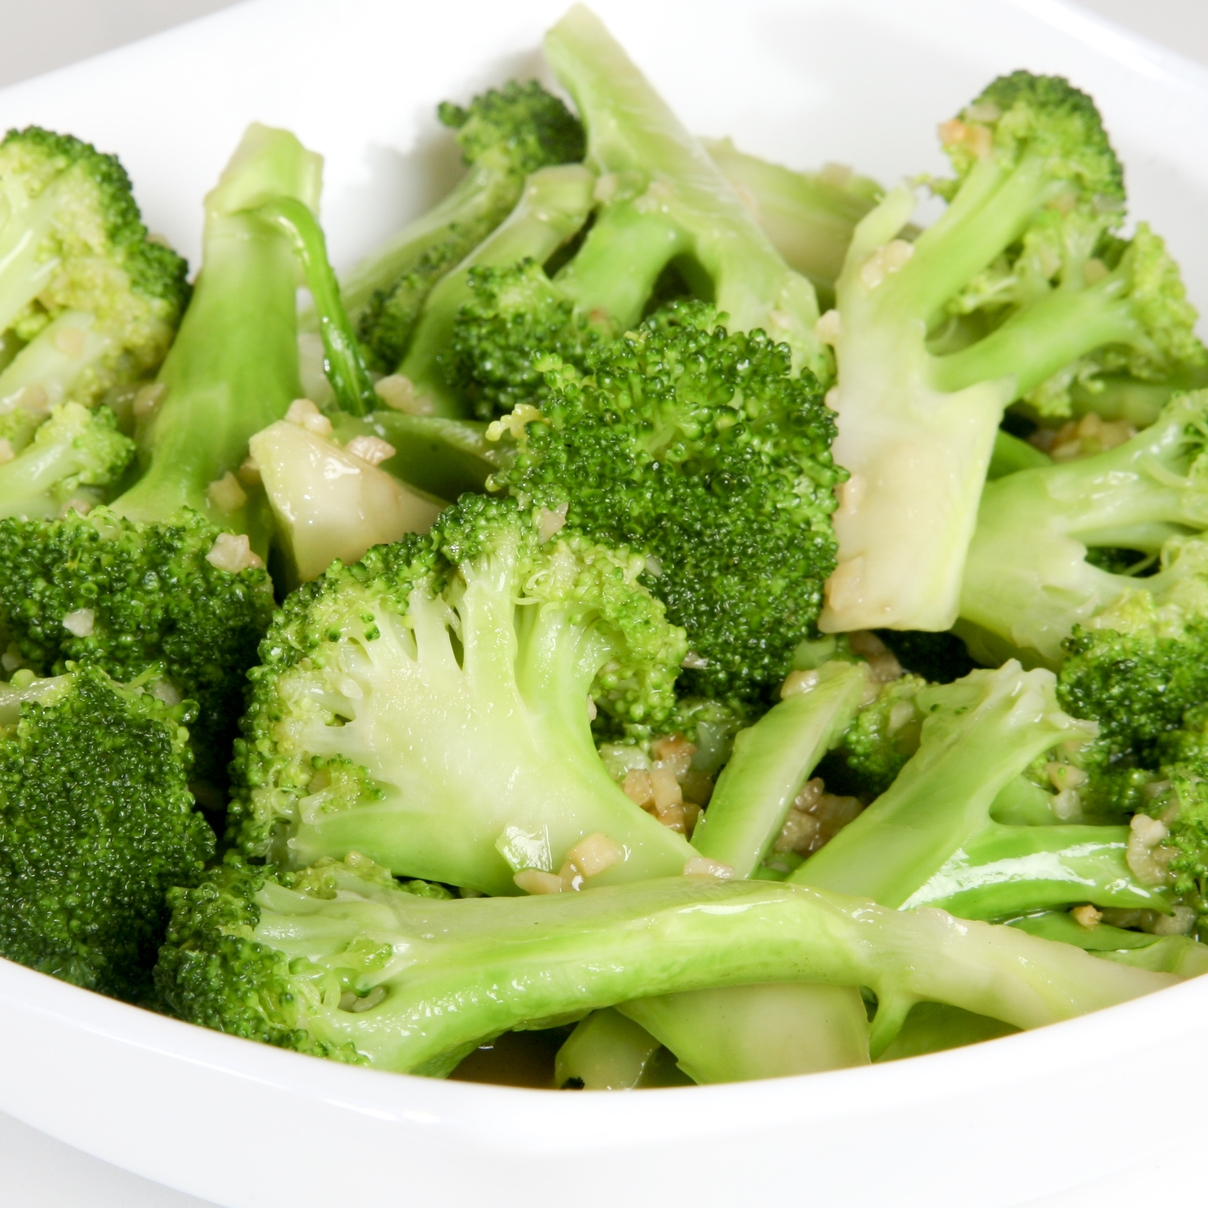 Broccoli Sautéed with Garlic Sauce